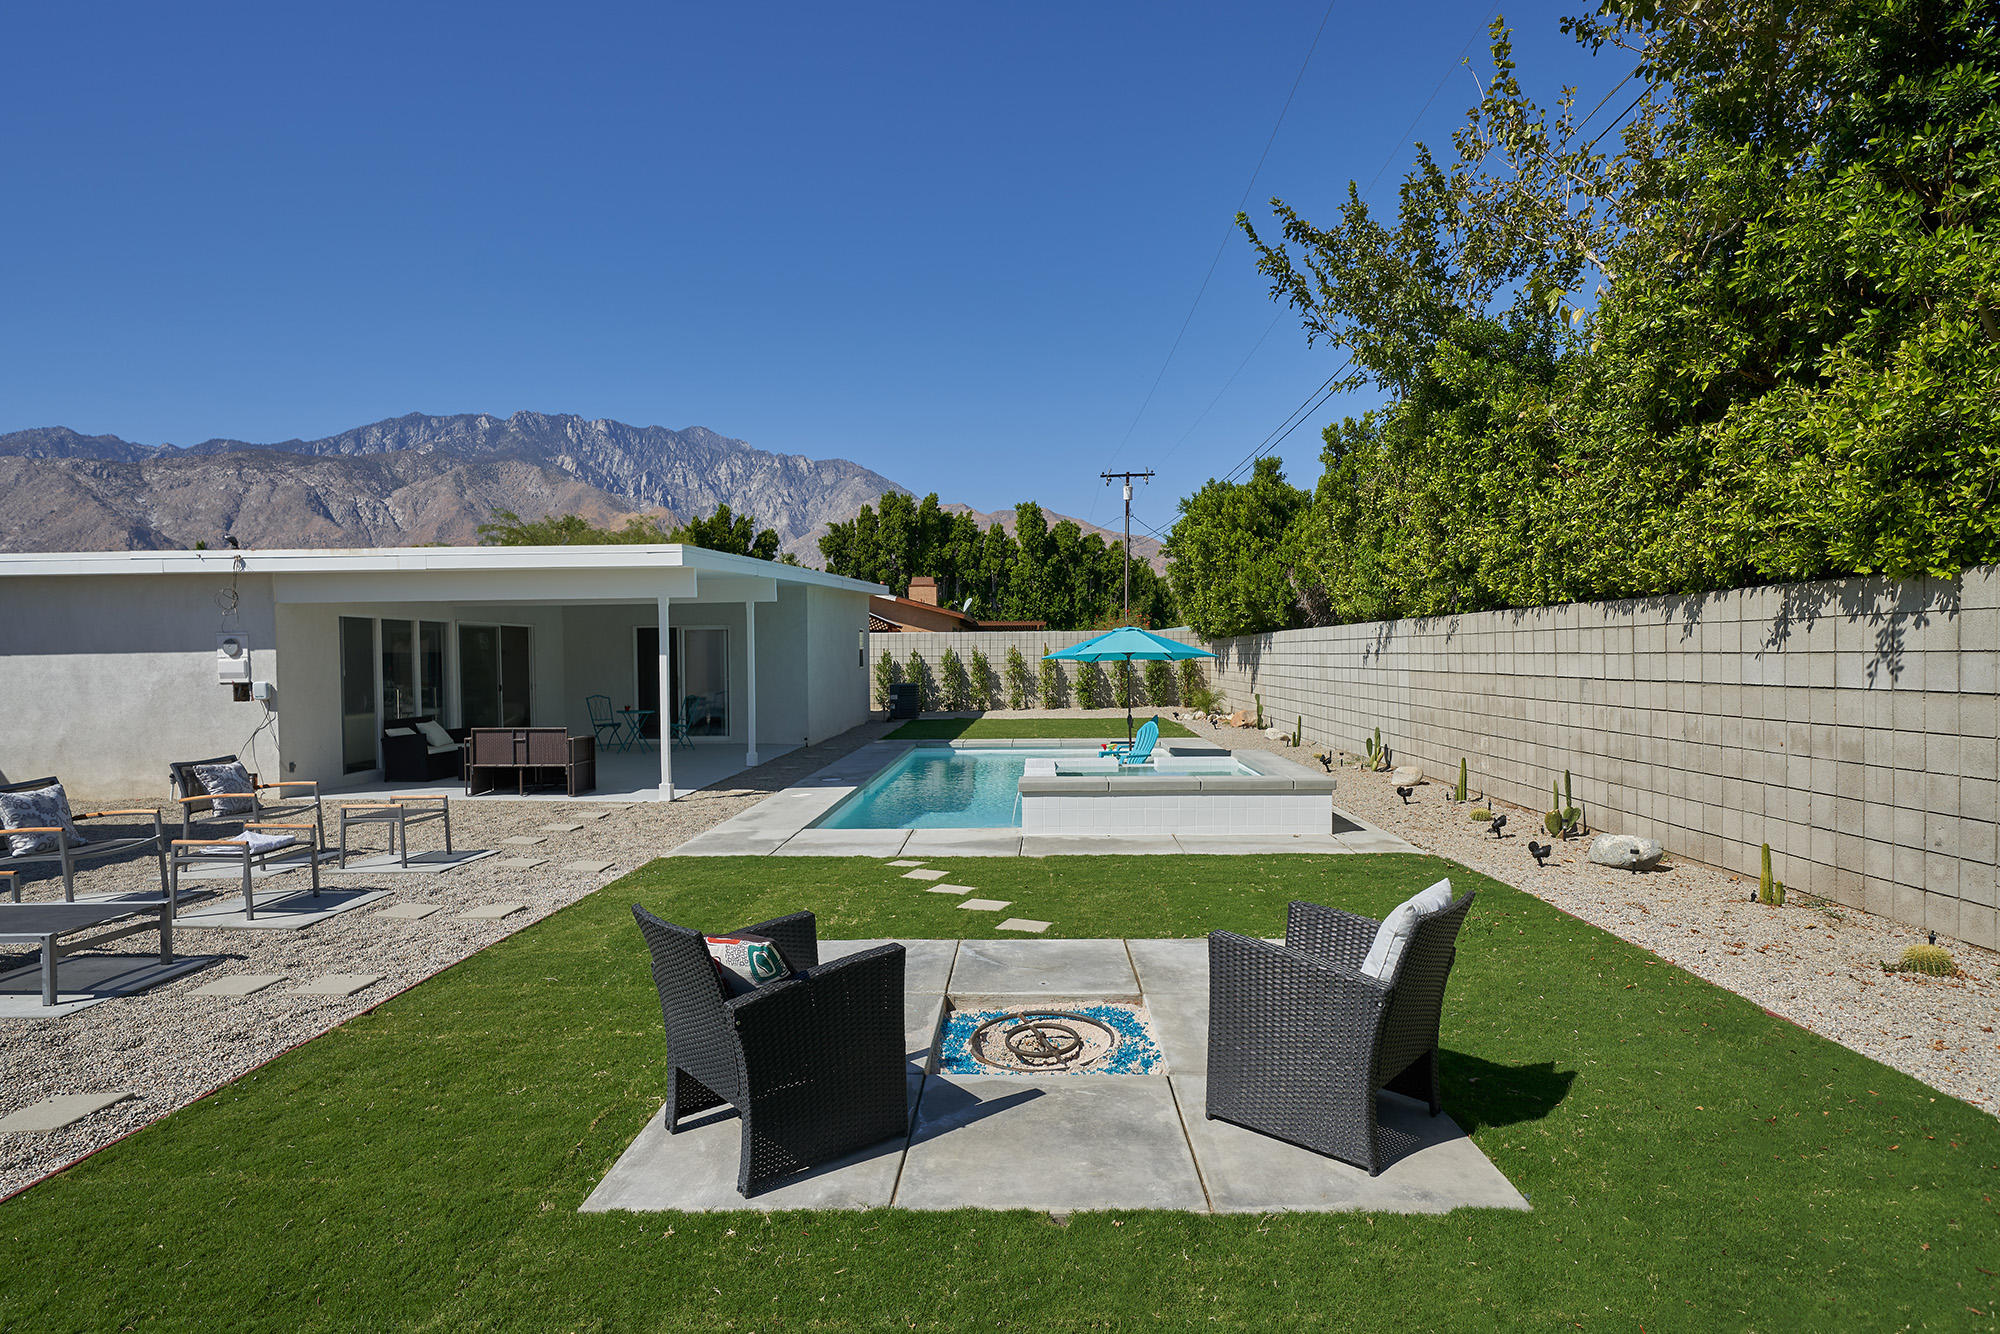 2326 E Finley Road, Palm Springs, California 92262, 3 Bedrooms Bedrooms, ,2 BathroomsBathrooms,Residential,For Sale,2326 E Finley Road,219041612